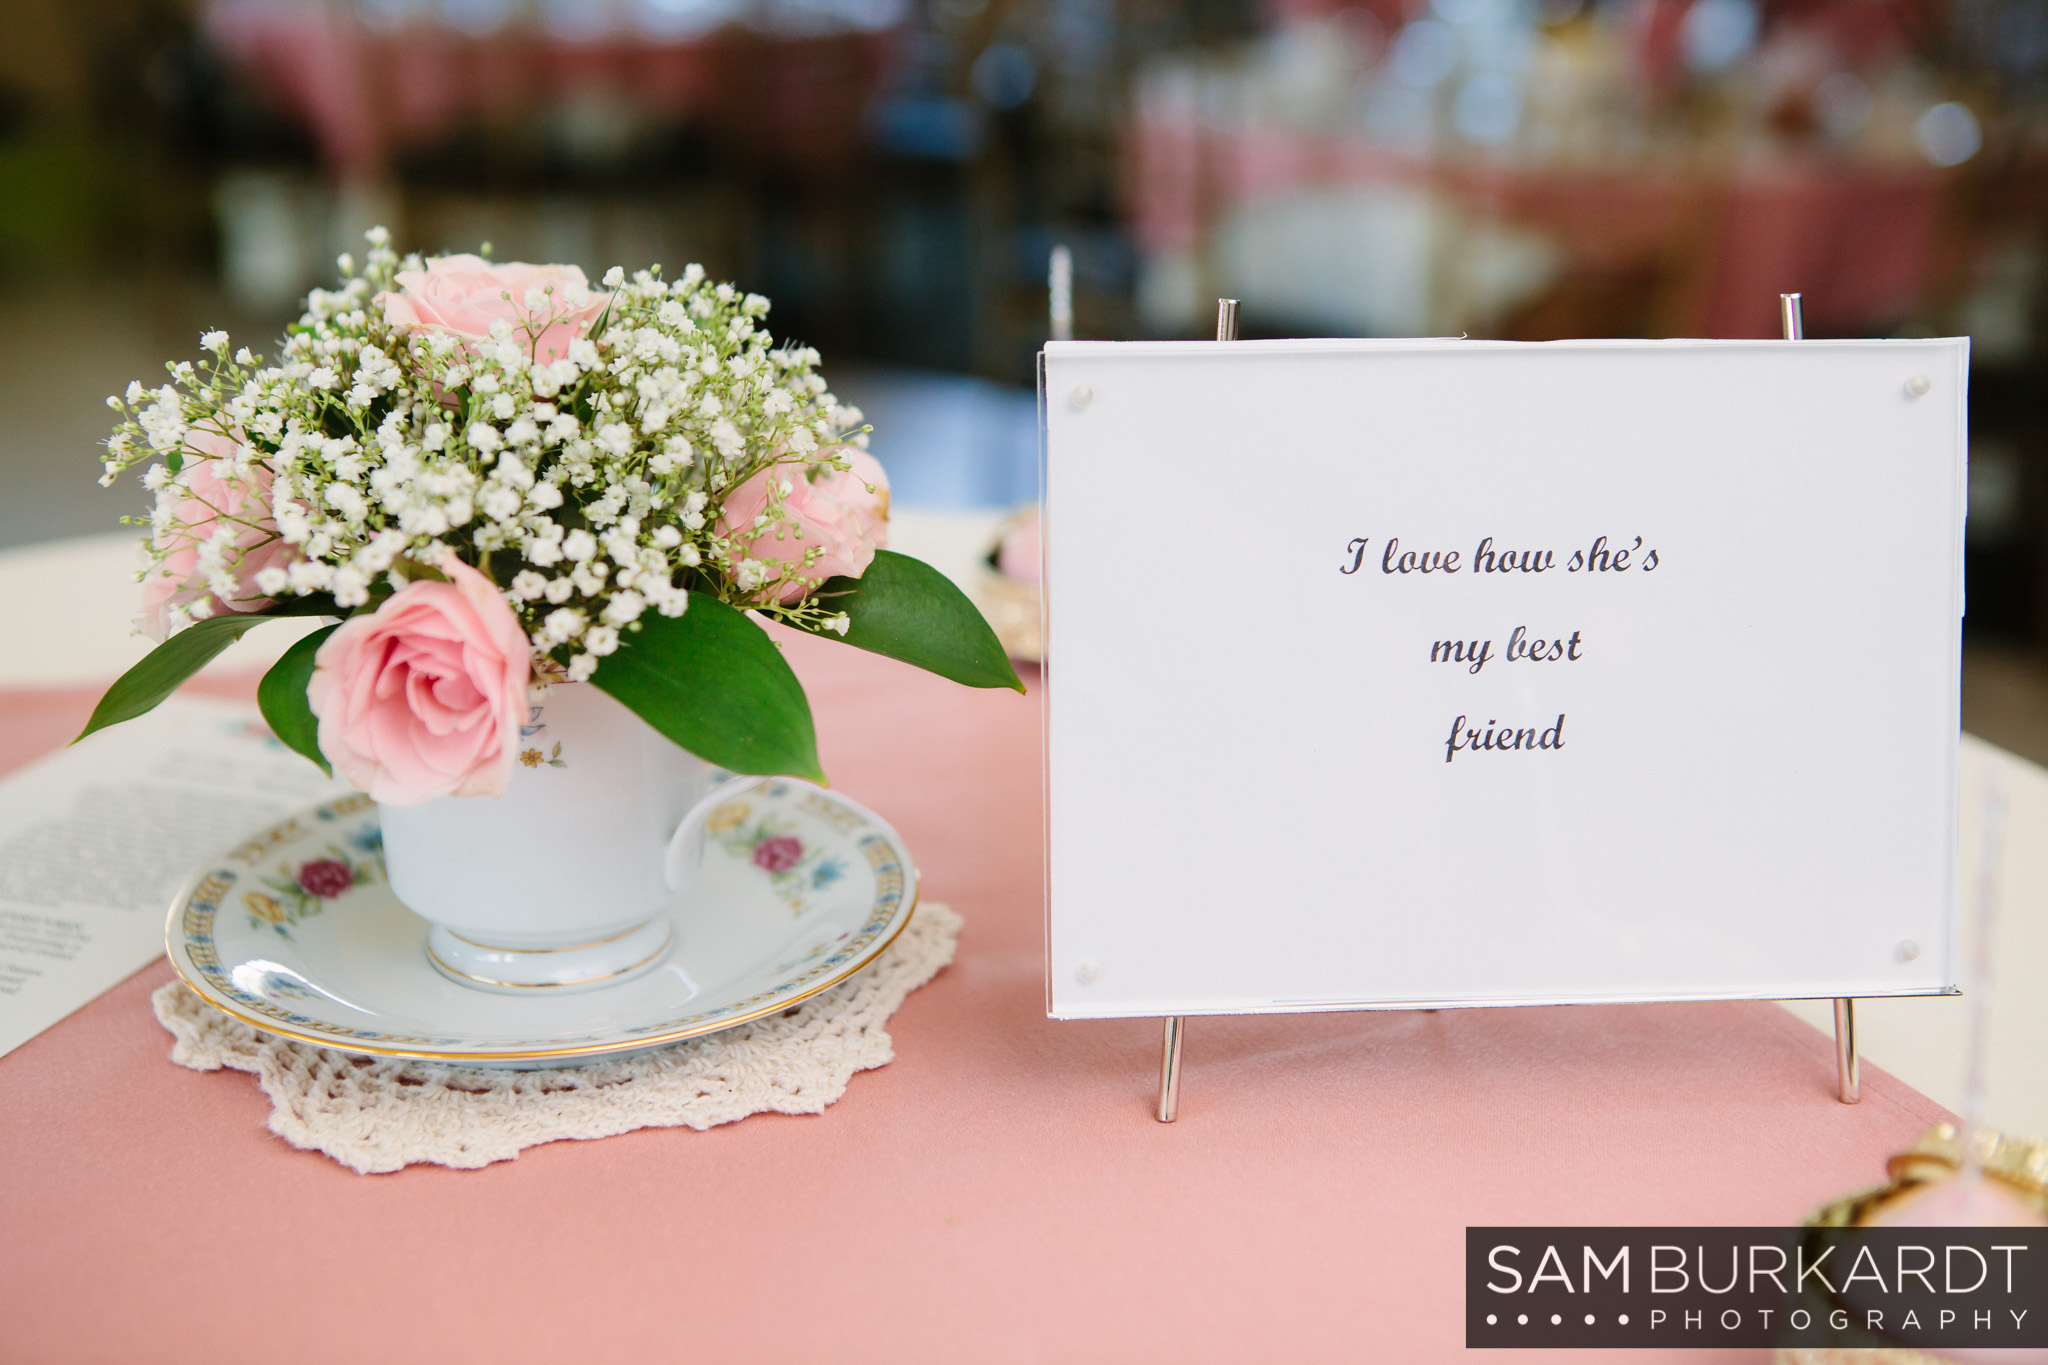 samburkardt_bridal_shower_trumbull_connecticut_photography_wedding_0018.jpg